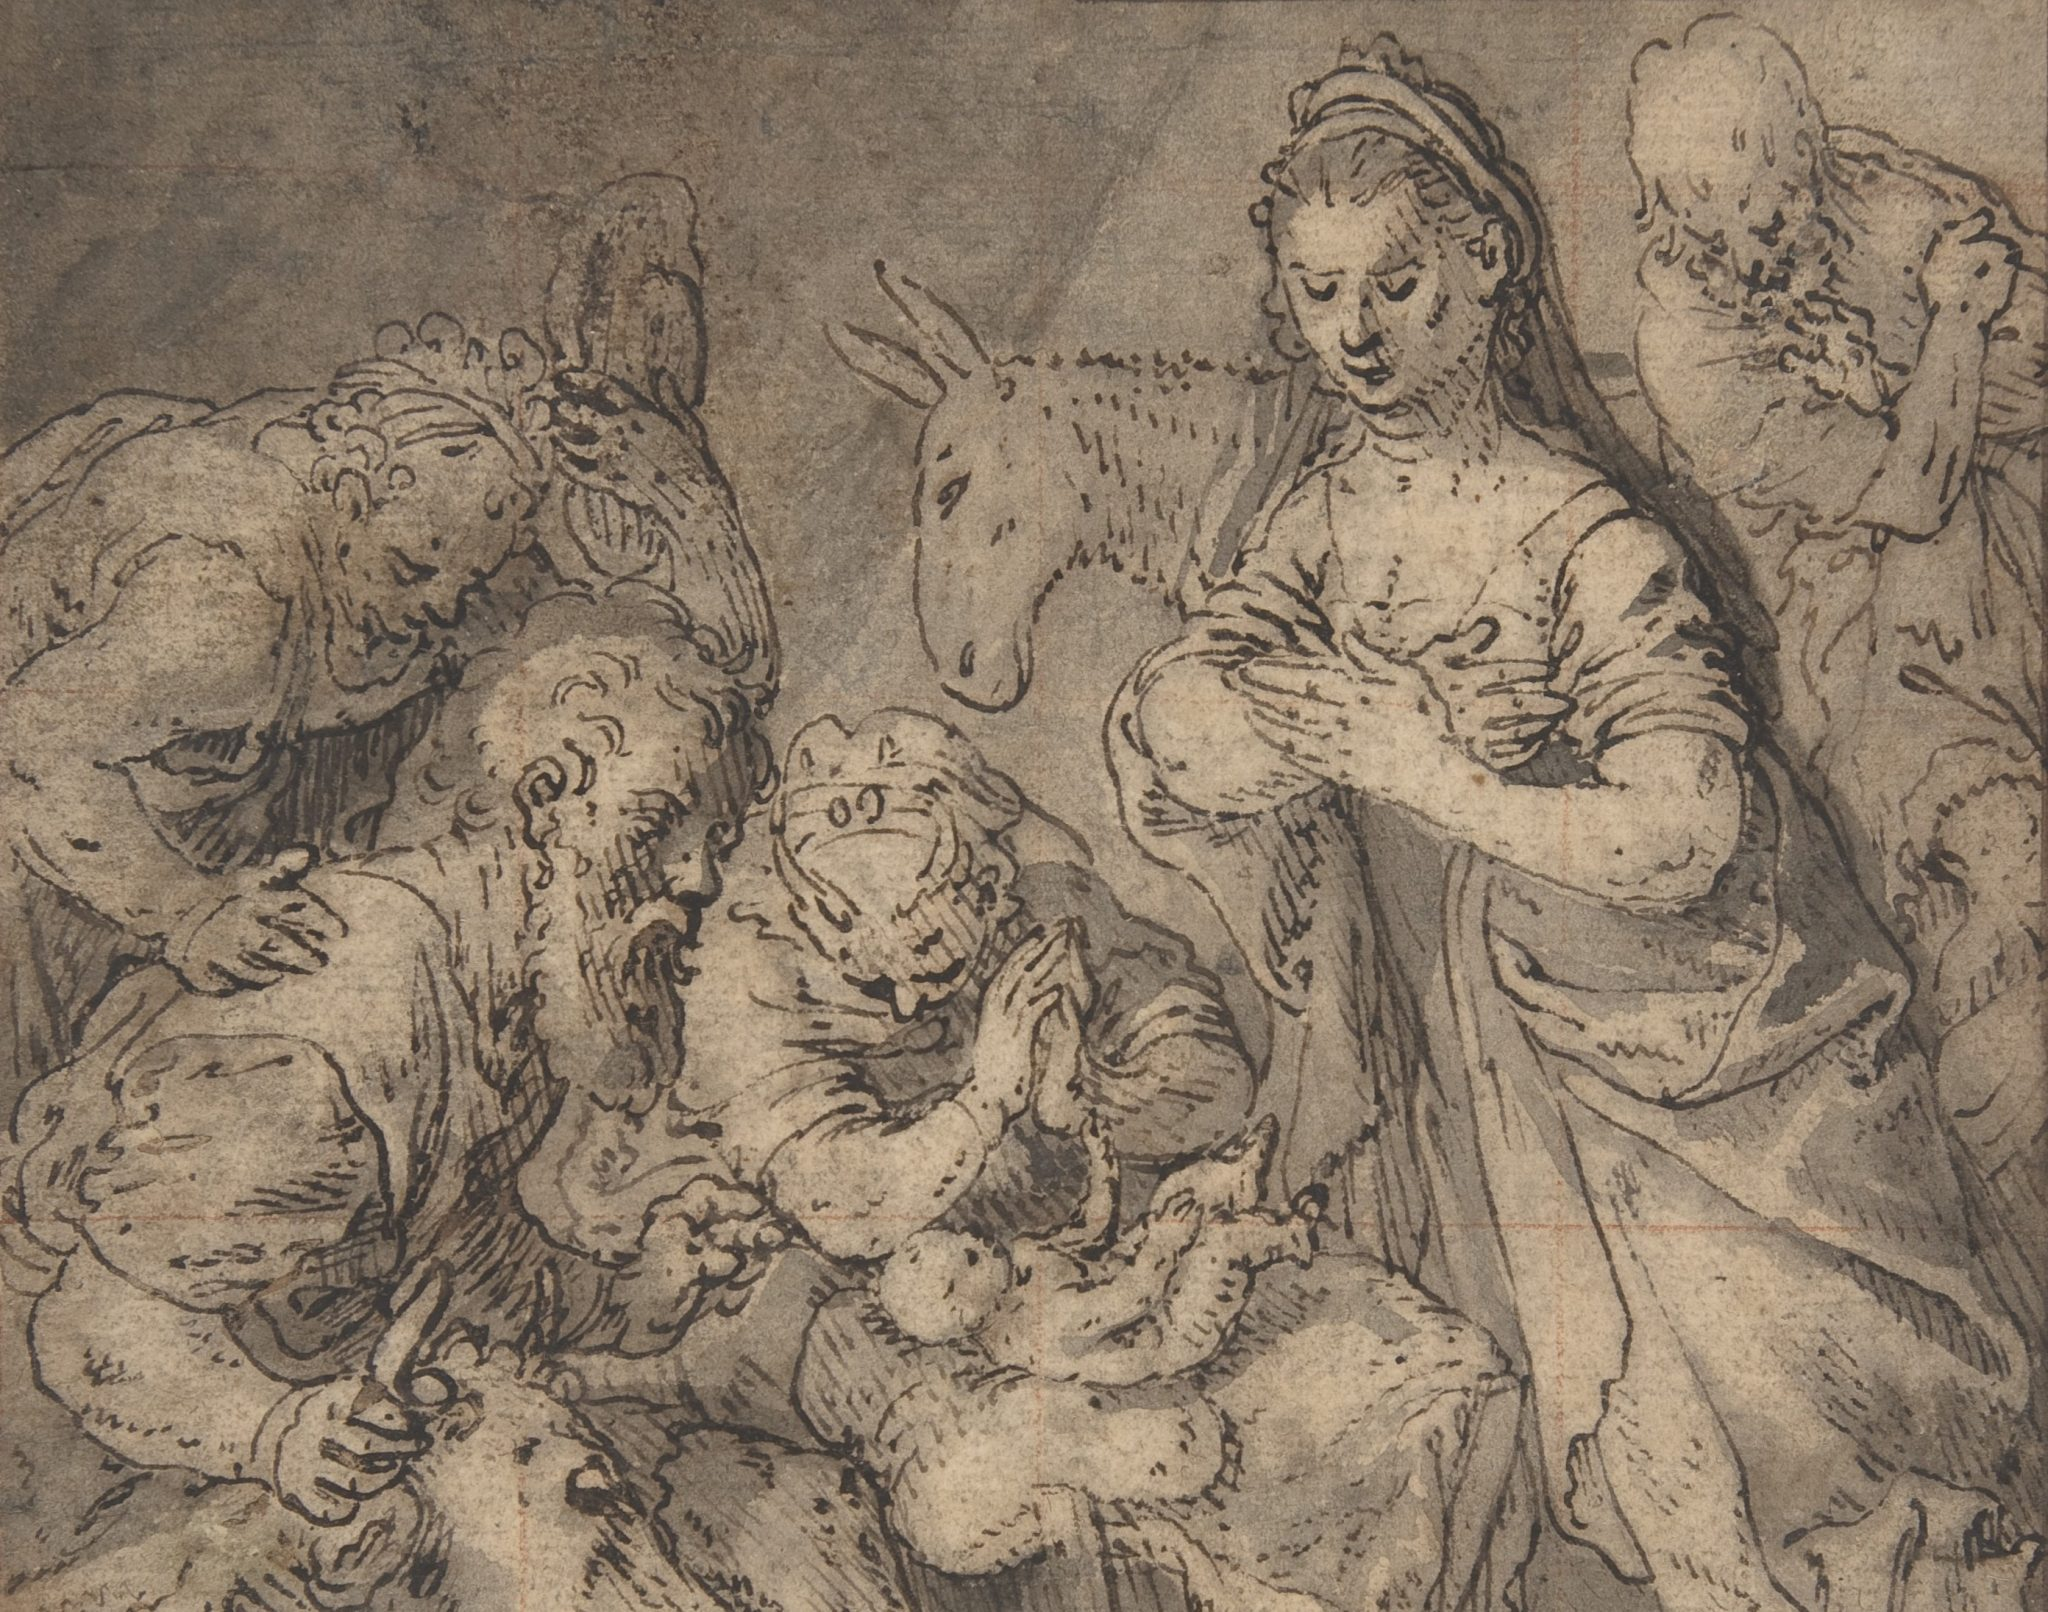 Drawing → Underdrawing → Painting: Compositional Evolution in the Working  Process of Joachim Beuckelaer - Journal of Historians of Netherlandish Art